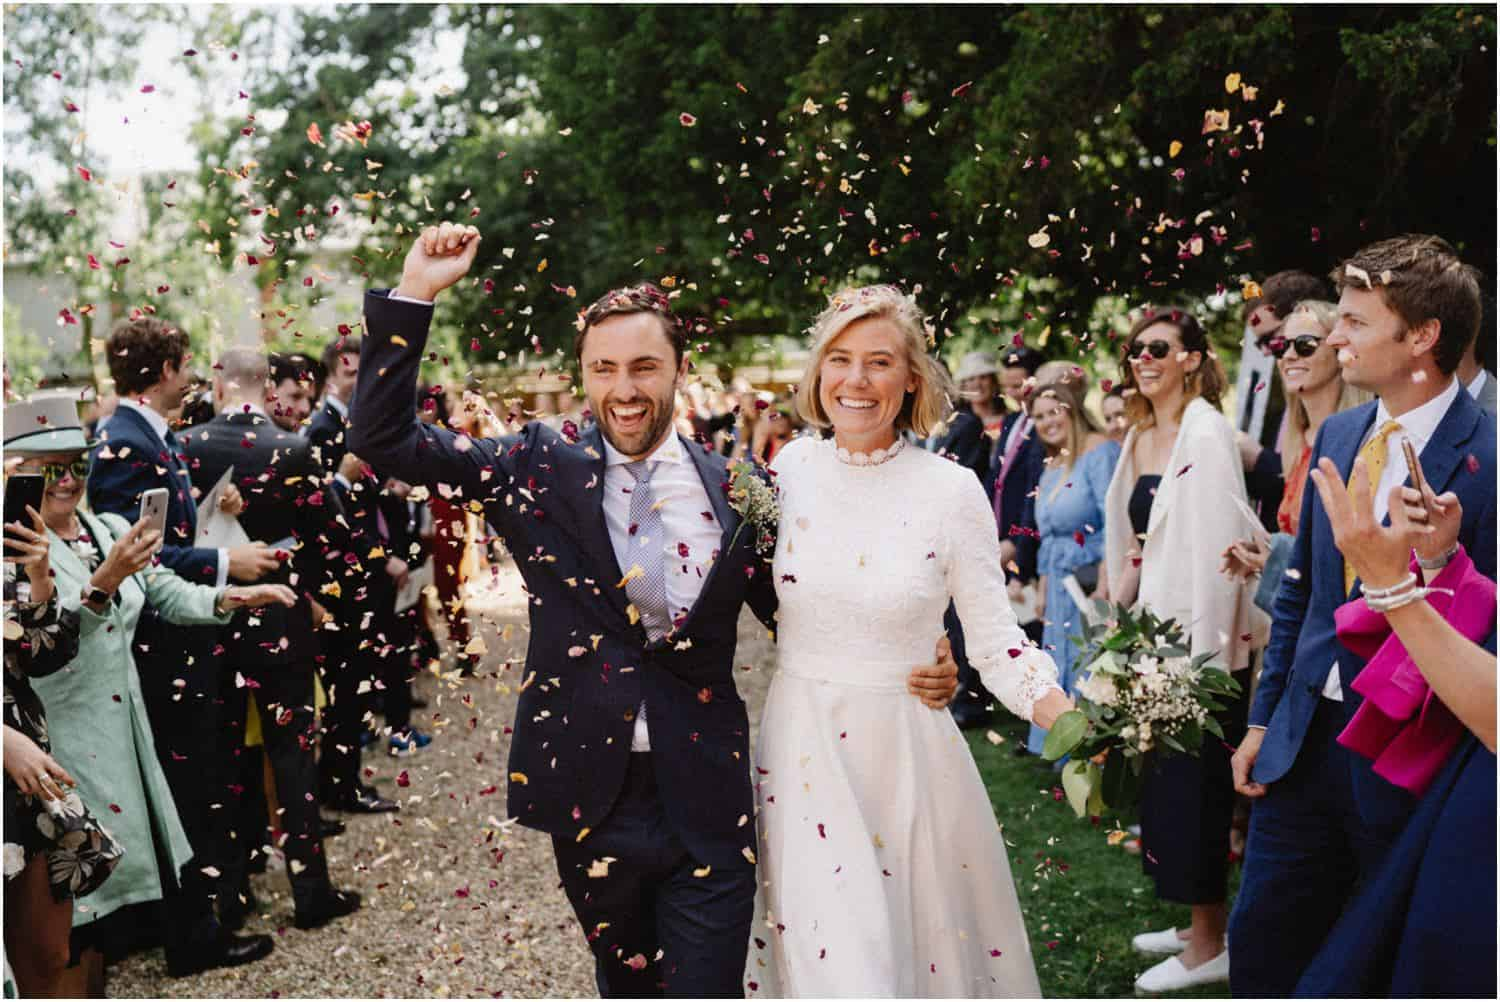 A newly married couple are covered in confetti thrown by their friends at their Isle of Wight wedding